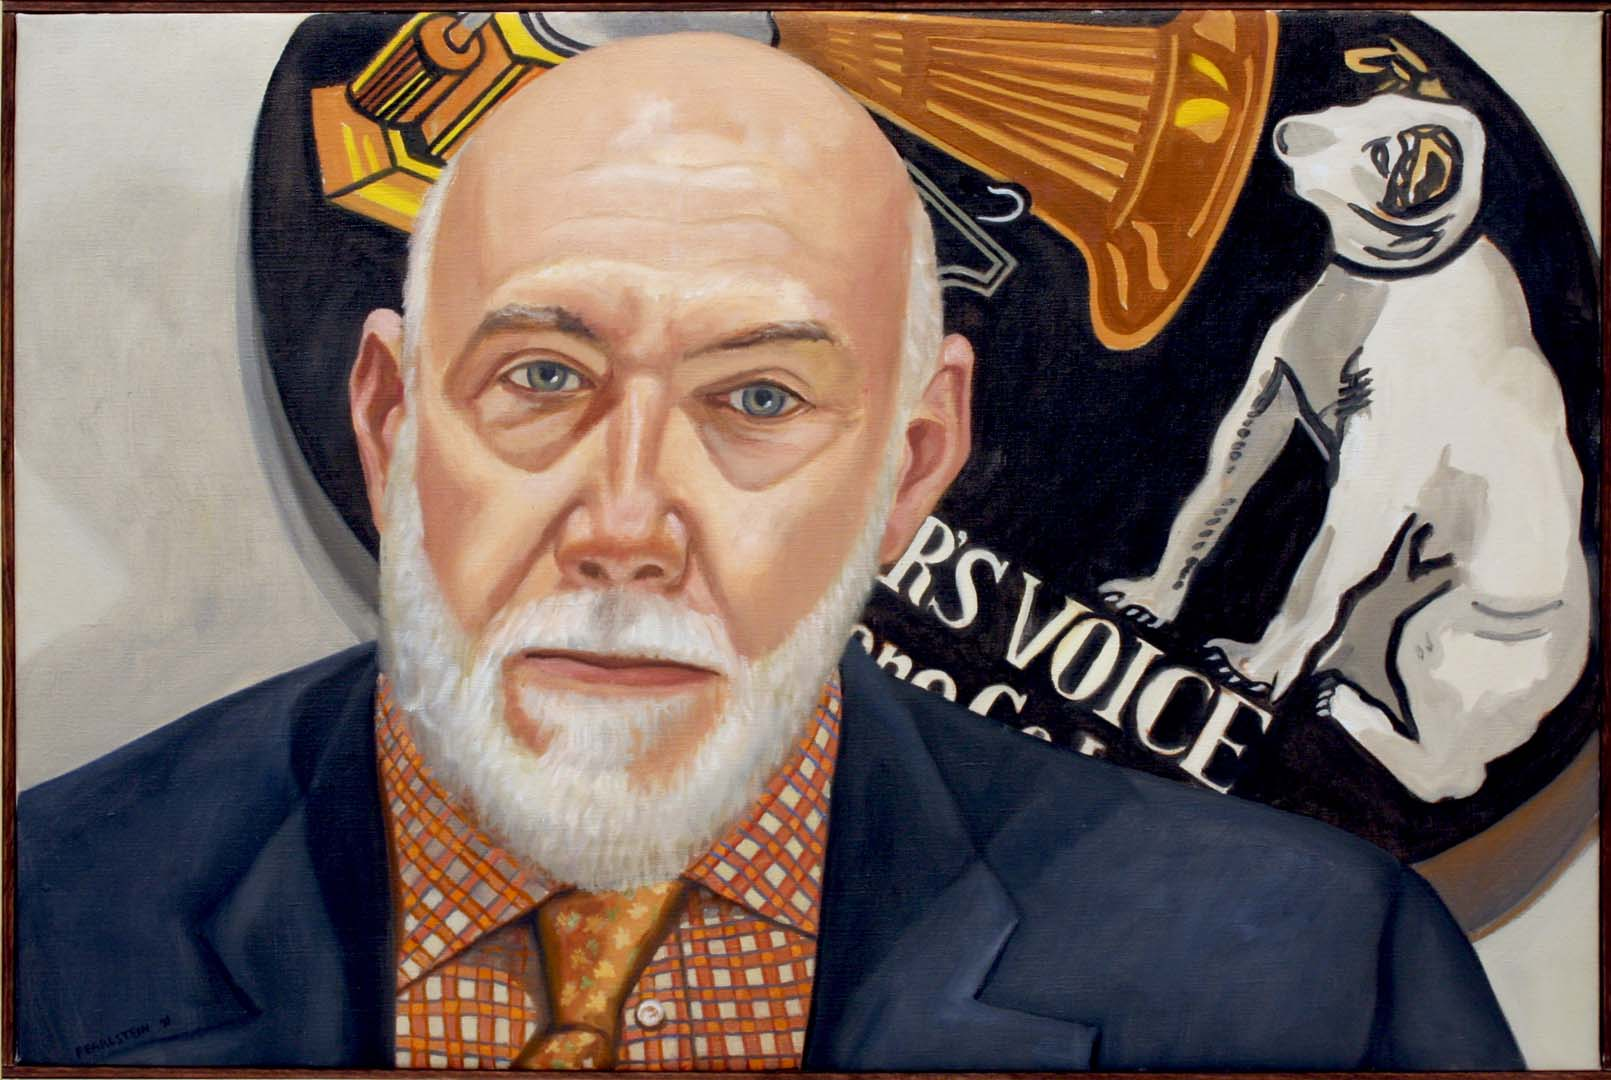 2010 Portrait of Richard Armstrong Oil on canvas 20 x 30